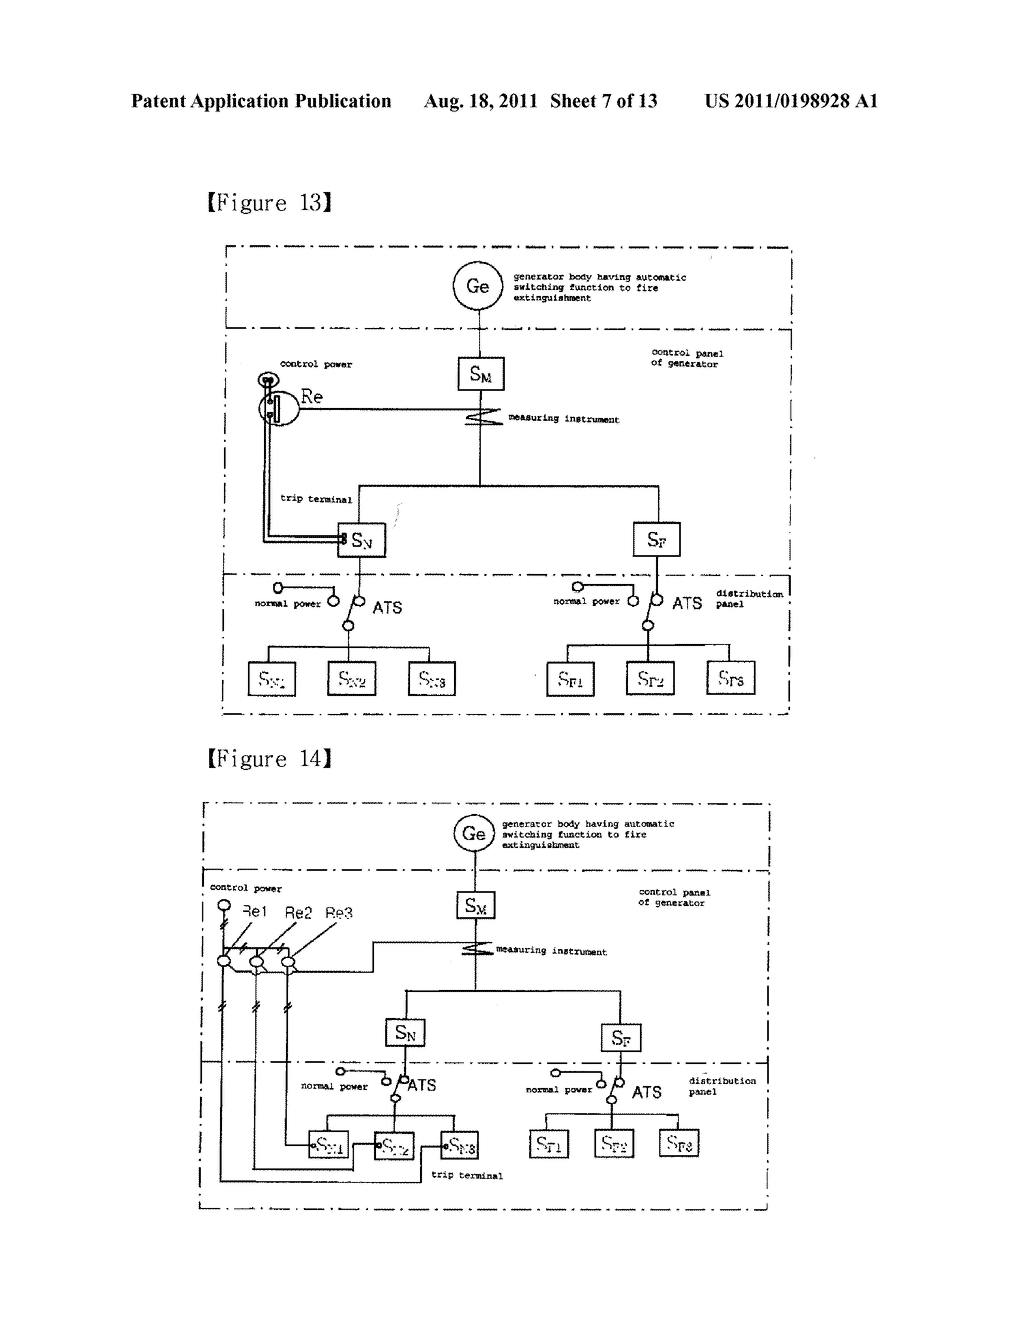 hight resolution of emergency generator power system with reserved fire protection power diagram schematic and image 08